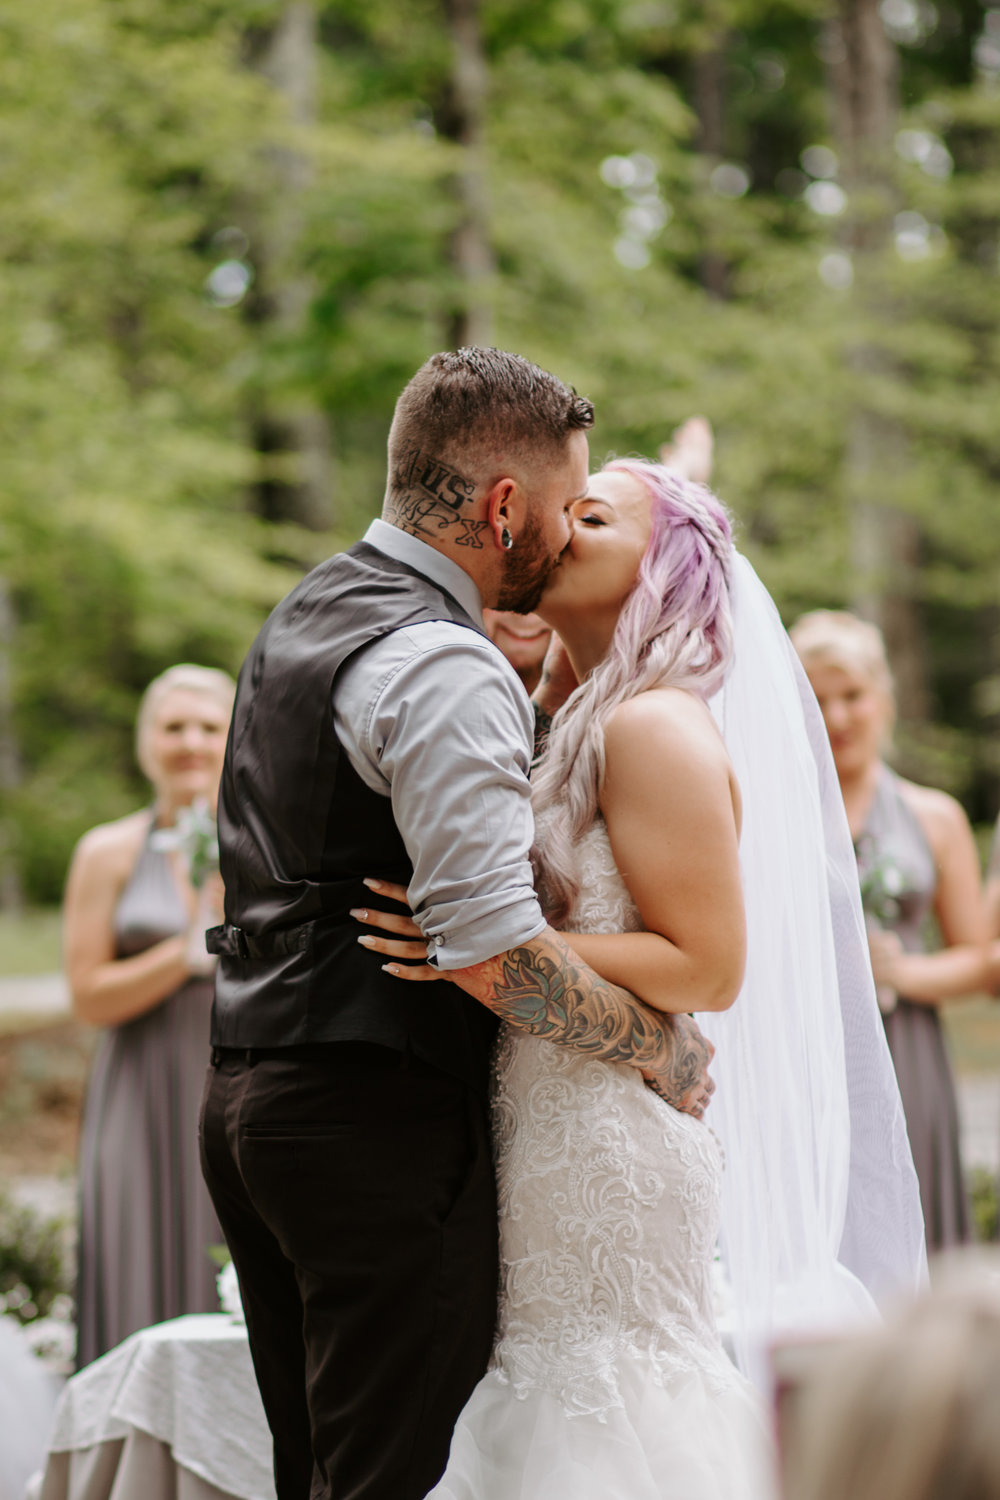 See Lexi & Aaron's Full Session